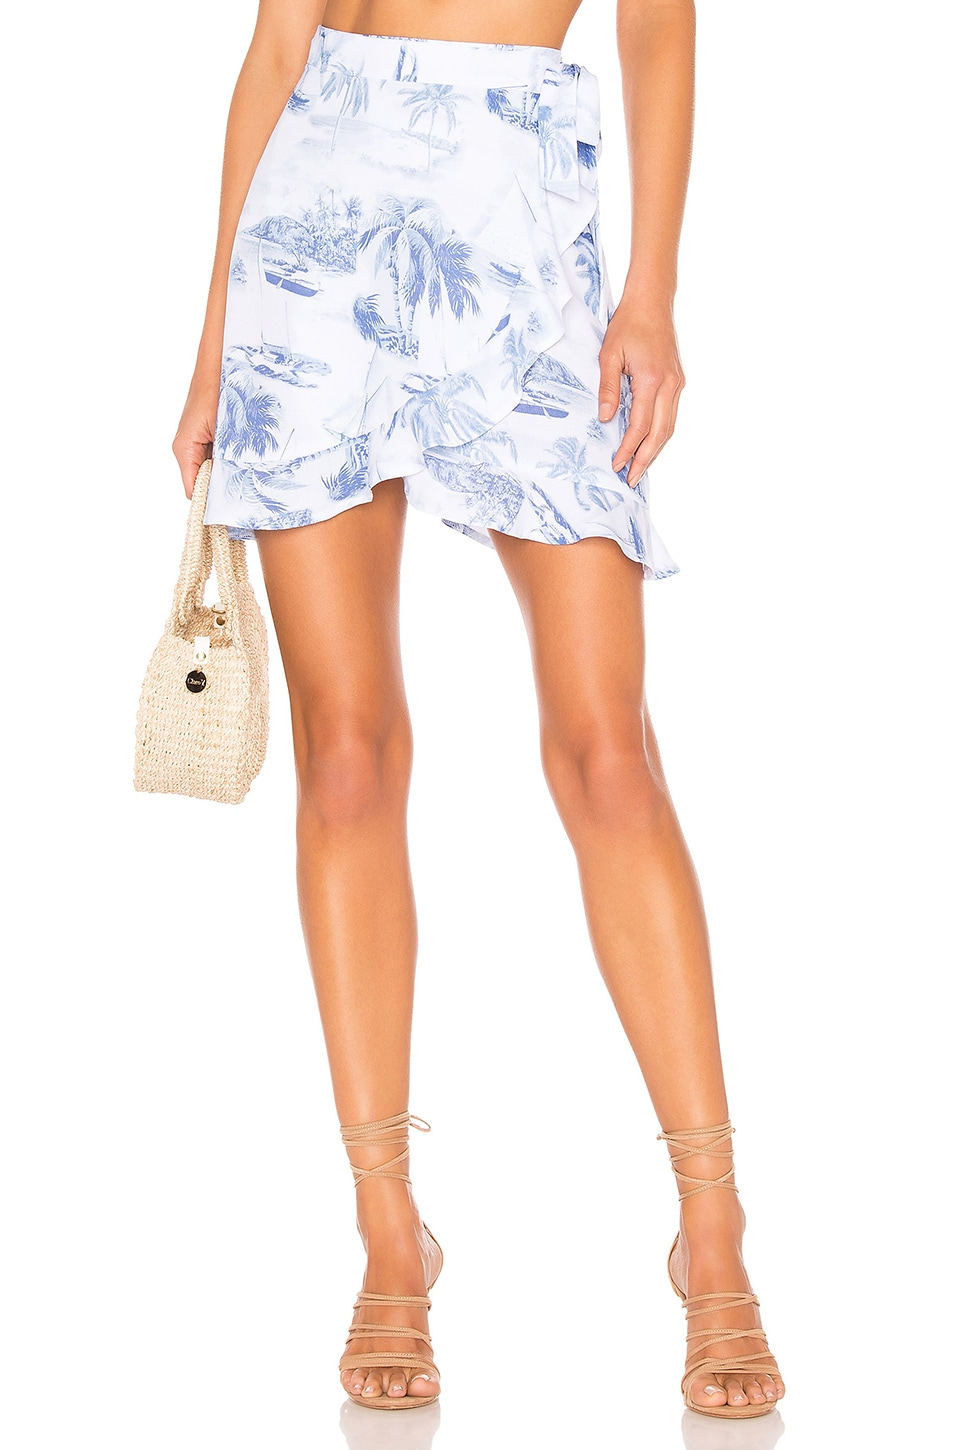 Show Me Your Mumu Skirts SHOW ME YOUR MUMU X REVOLVE ROAM RUFFLE SKIRT IN BLUE.